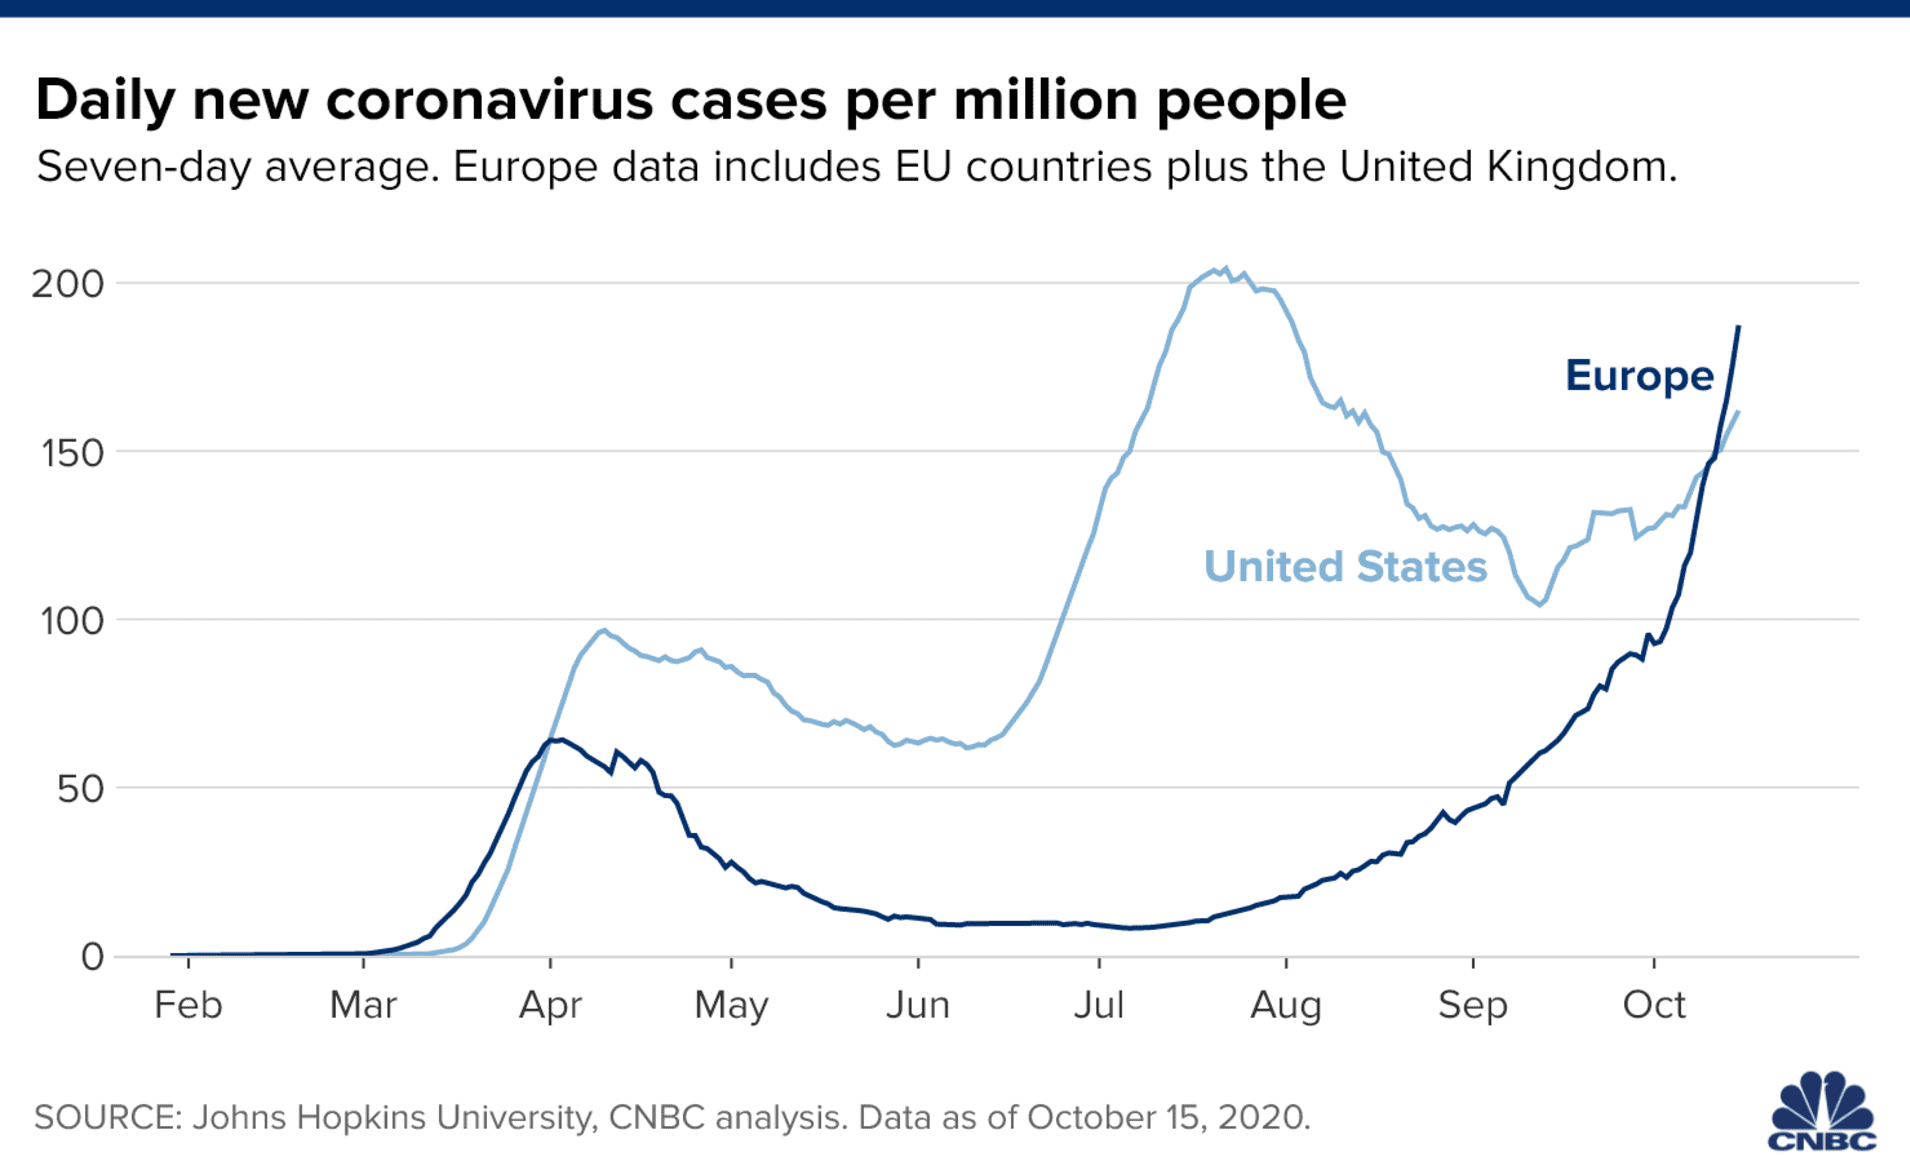 Chart showing daily new coronavirus cases per capita in the U.S. and Europe.